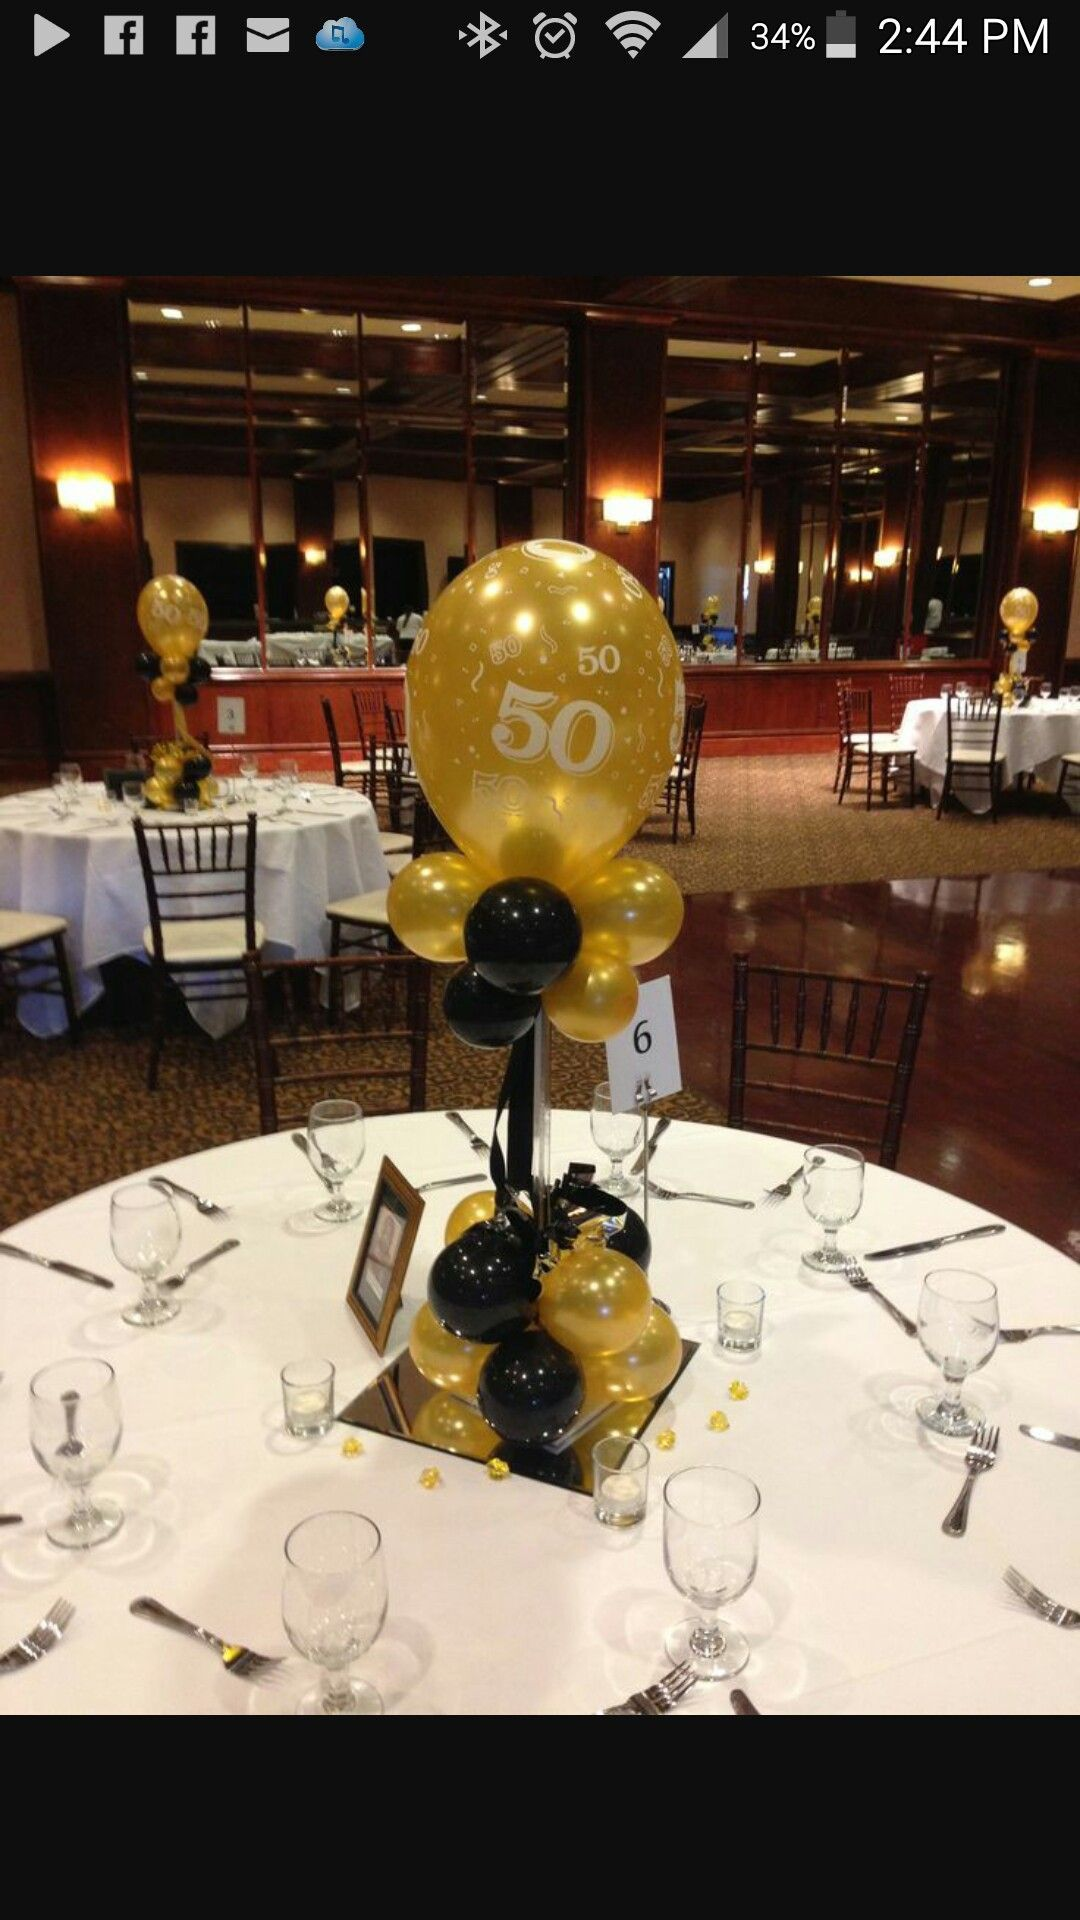 Image Result For Balloon Topiary Centerpieces Men 50th Birthday Balloons Decorations